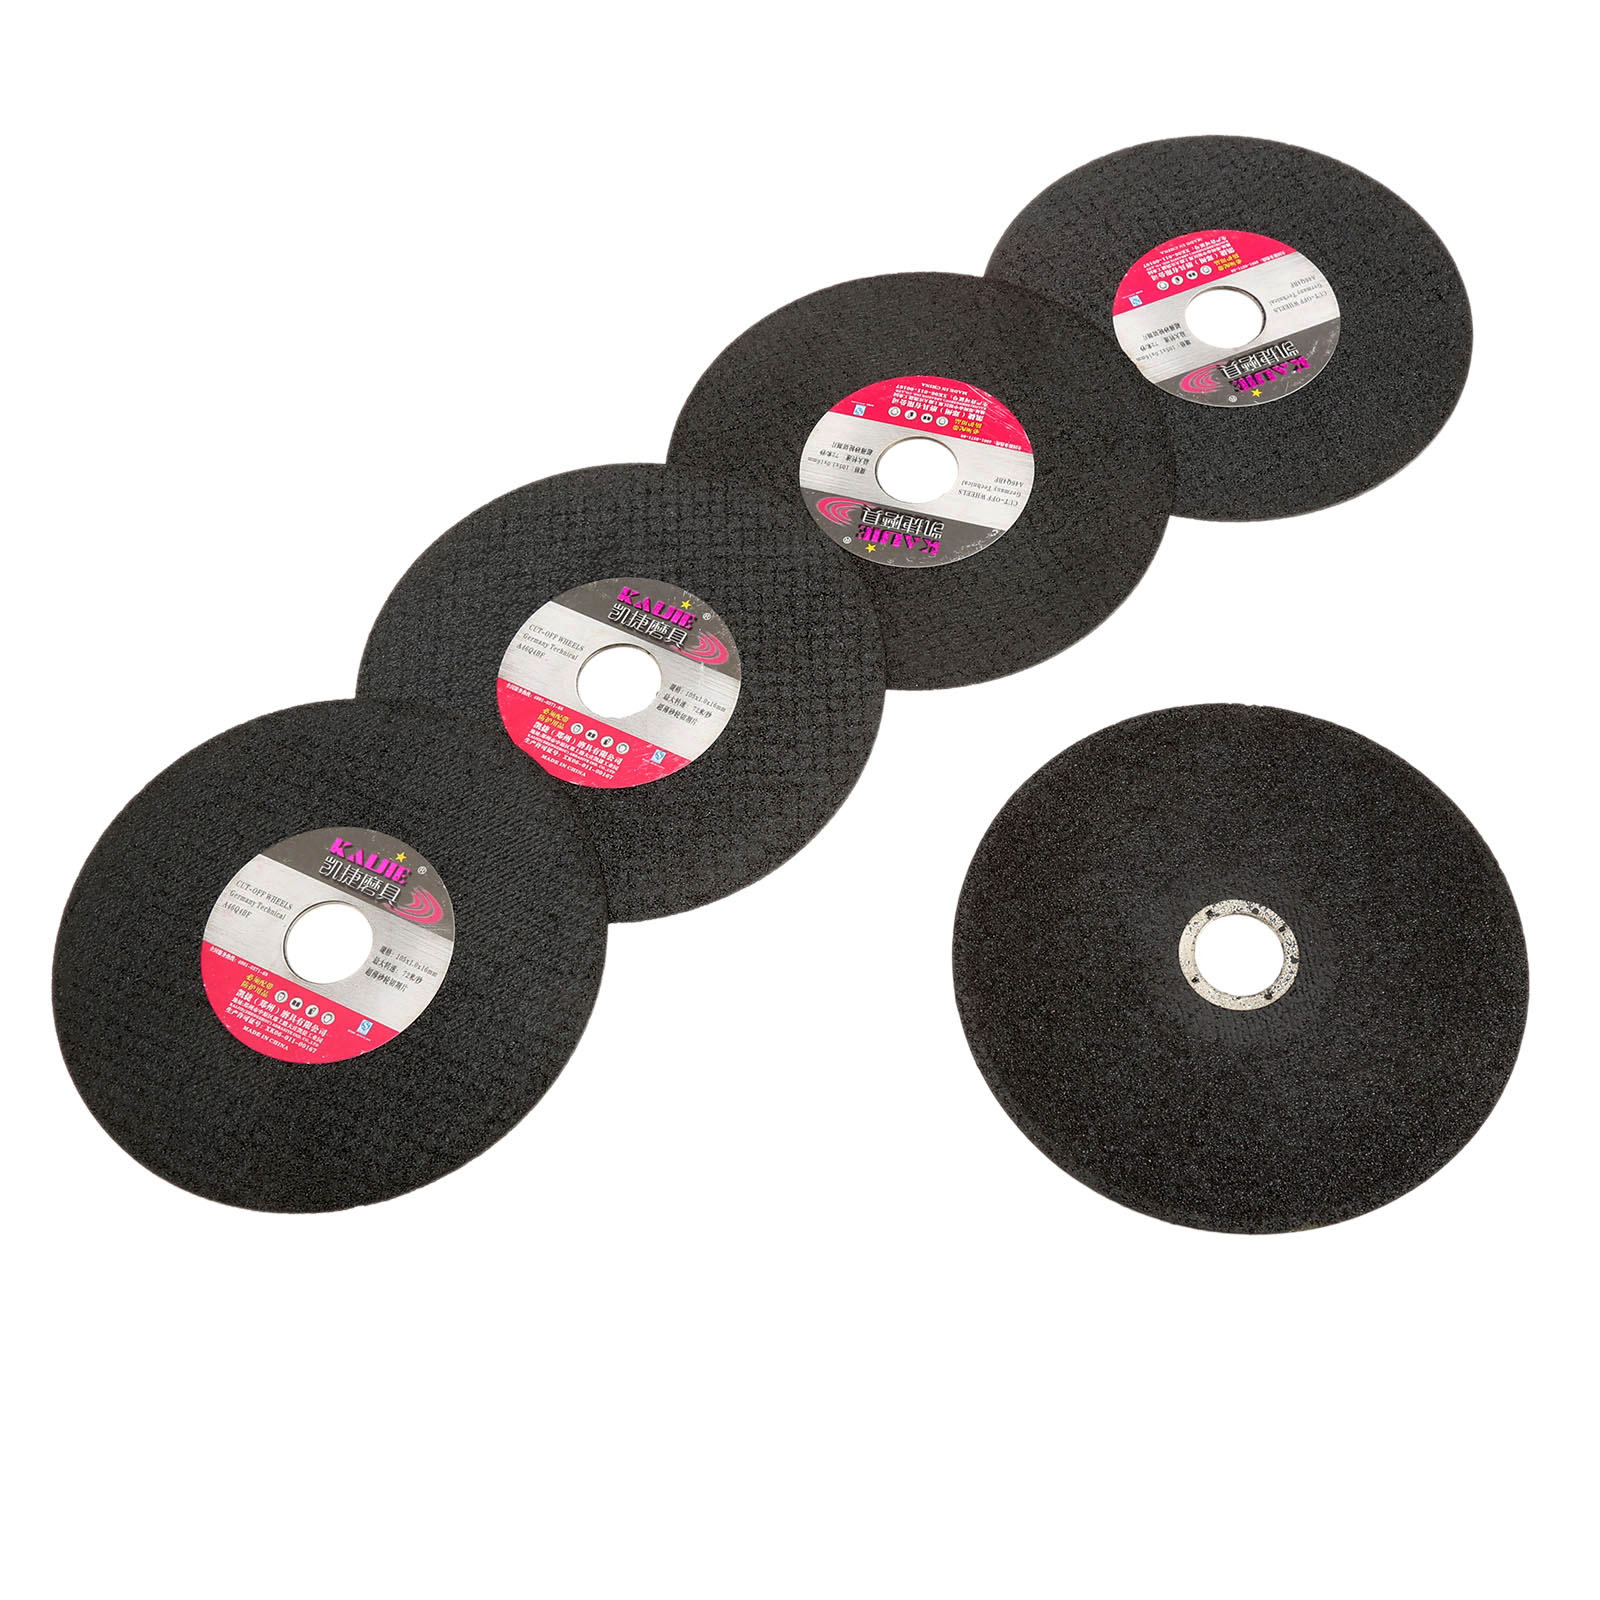 5Pcs Dremel Accesories Cutting Wheel 105mm Resin Grinding Wheel Cut Off Cutter Abrasive Disc Cutting Disc For Metal Wood Steel